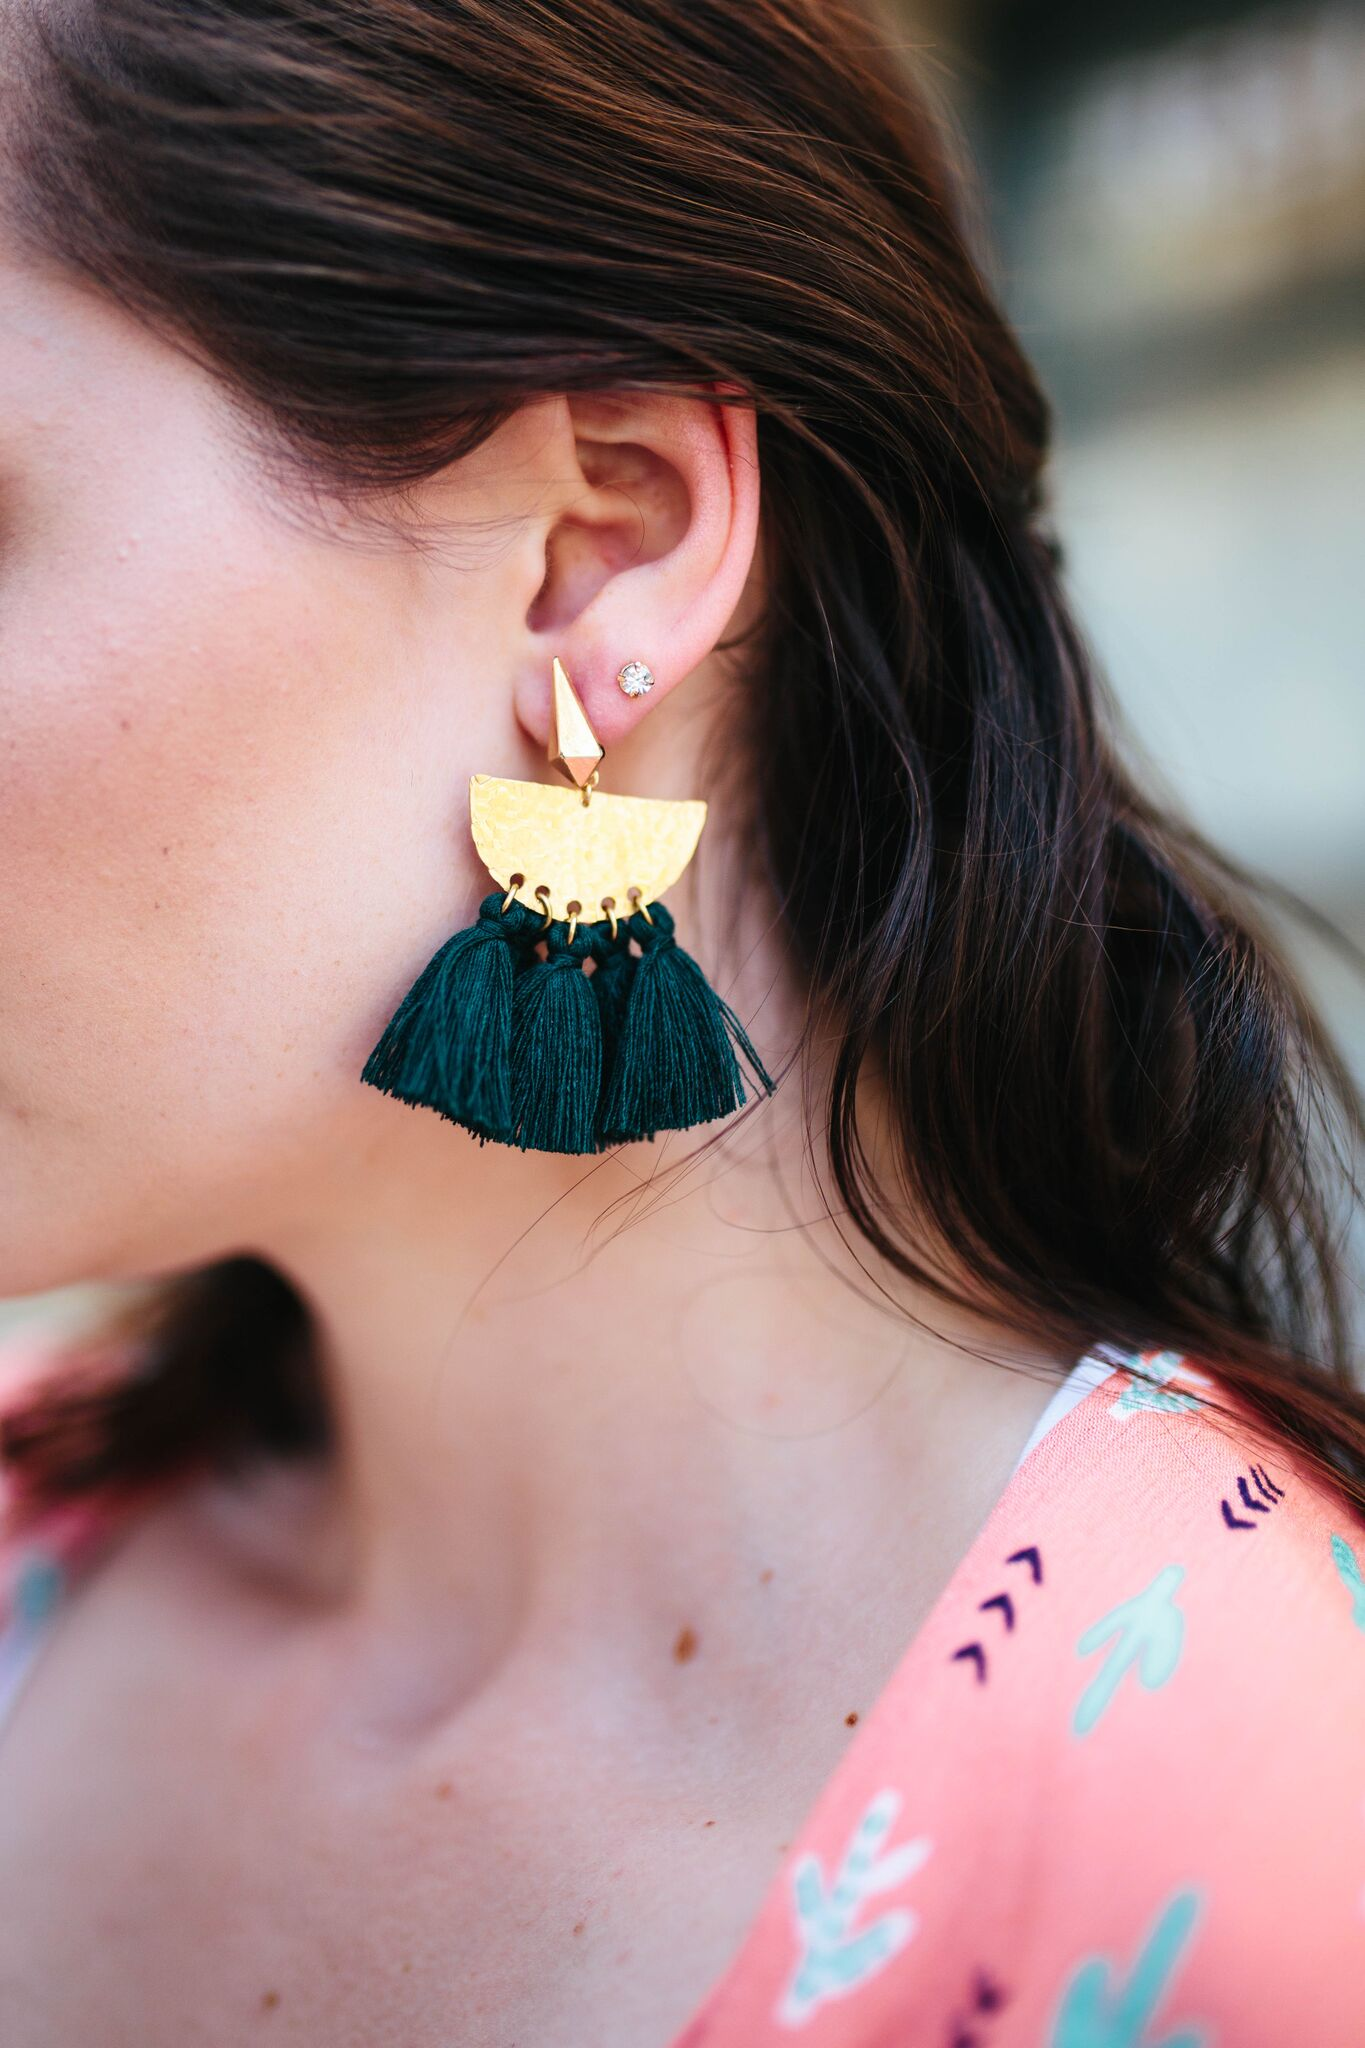 Use code ALYSSA15 to get 15% off these earrings and any other Mod & Jo jewelry :)